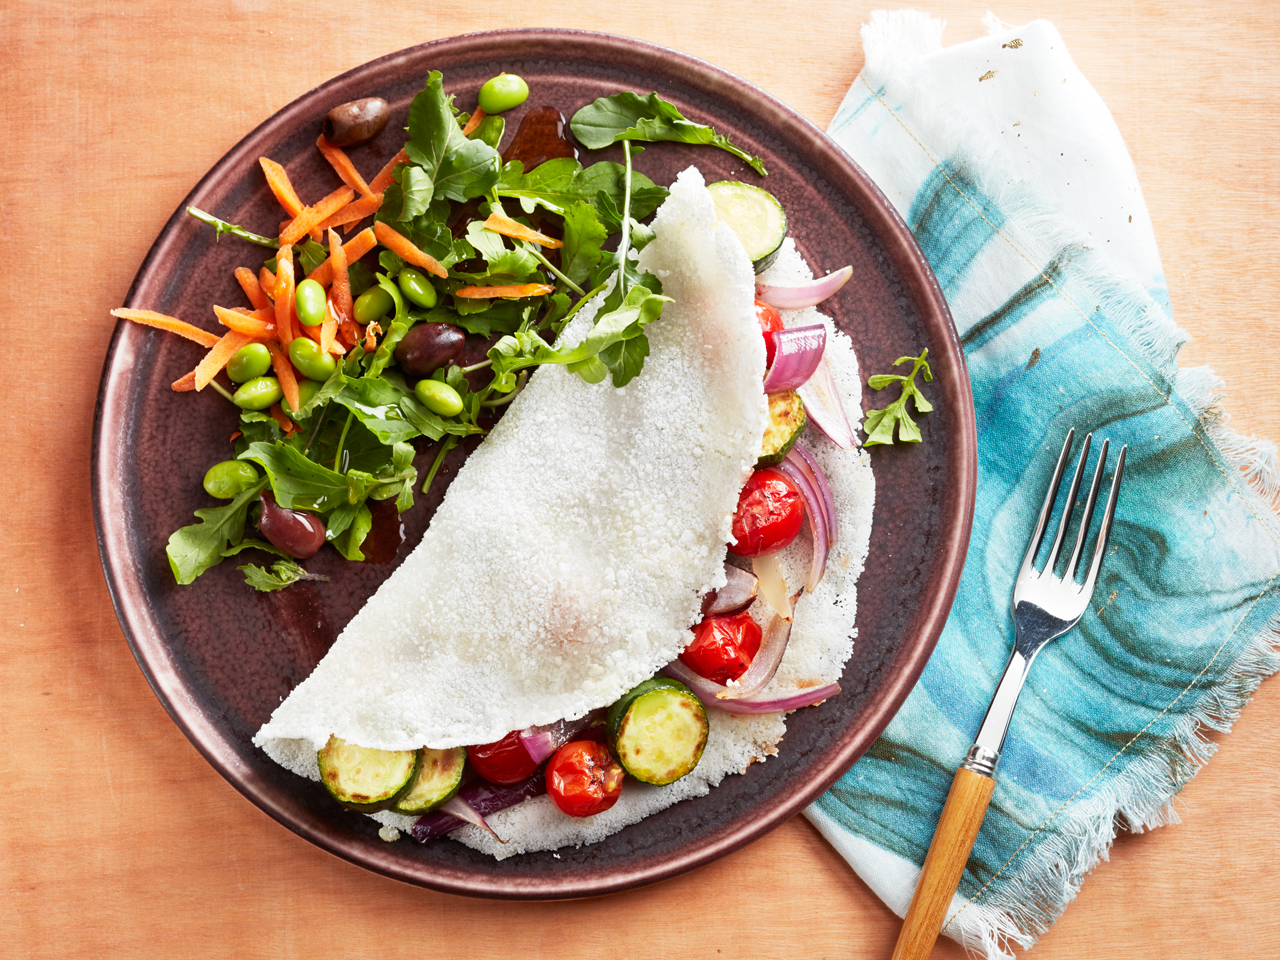 Tapioca crepe stuffed with vegetables on plate with salad